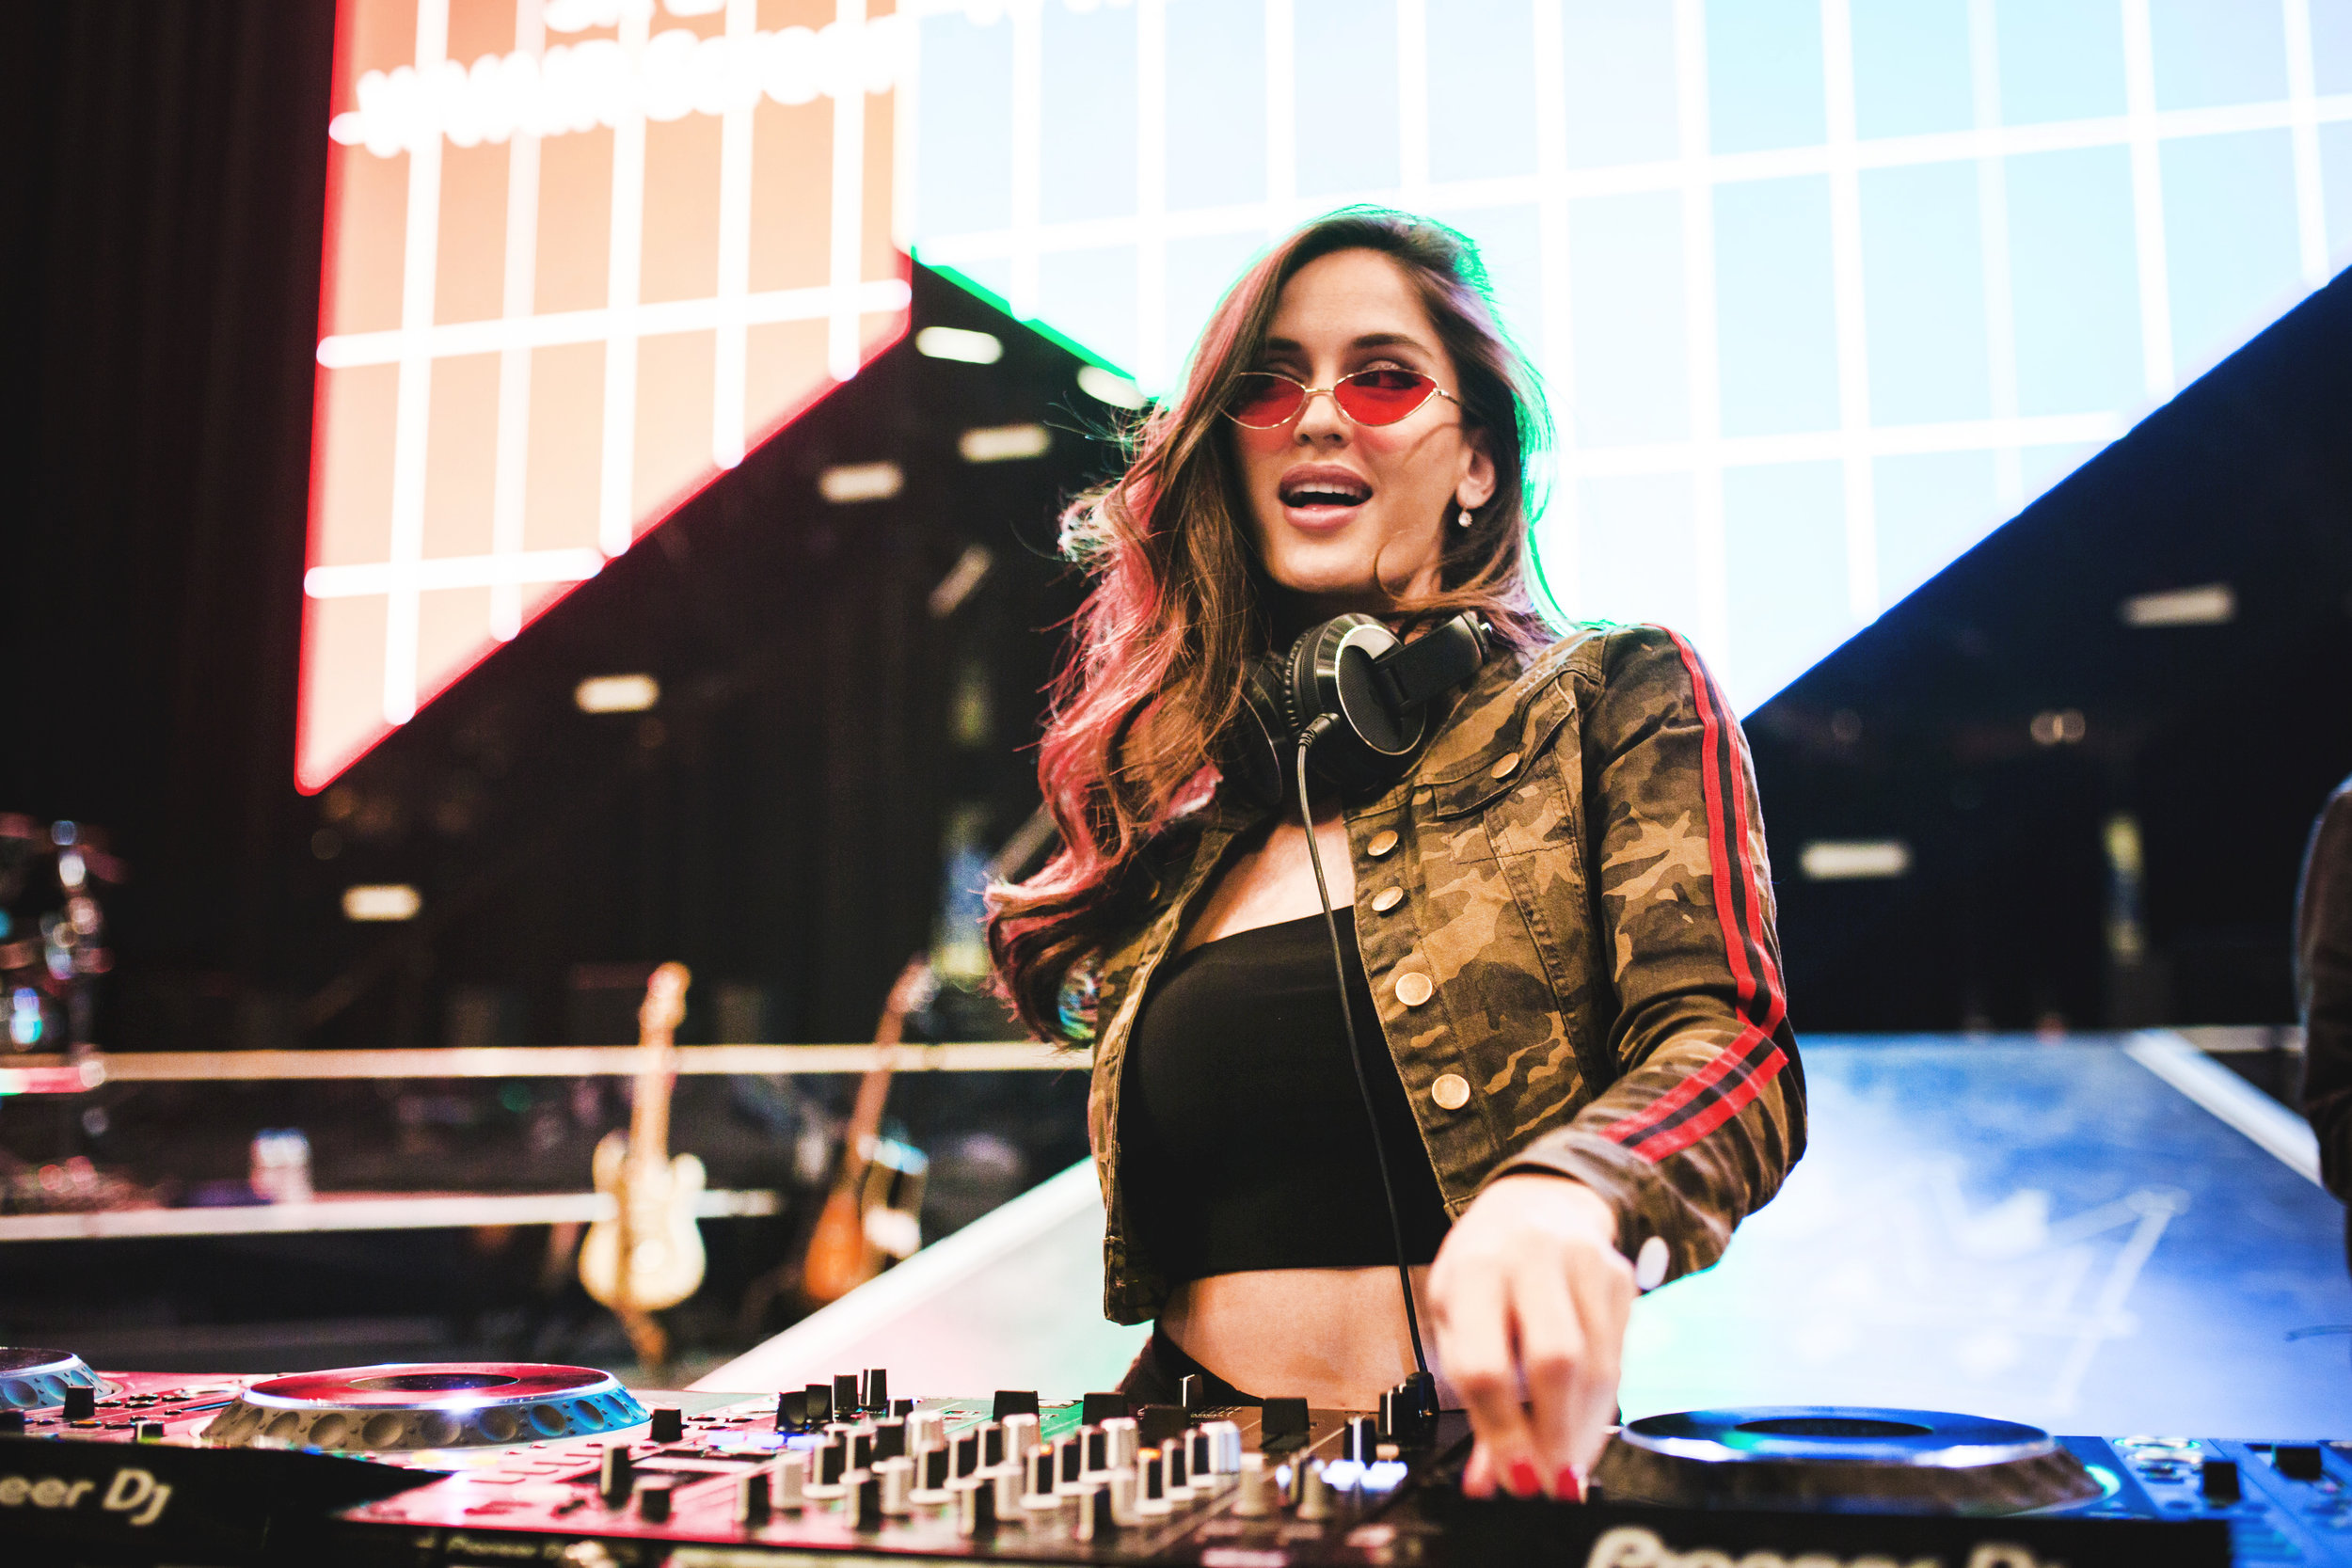 Natalia Barulich and Esther Anaya are a DJ duo featuring live violin and vocals with a heavy dose of good energy. -